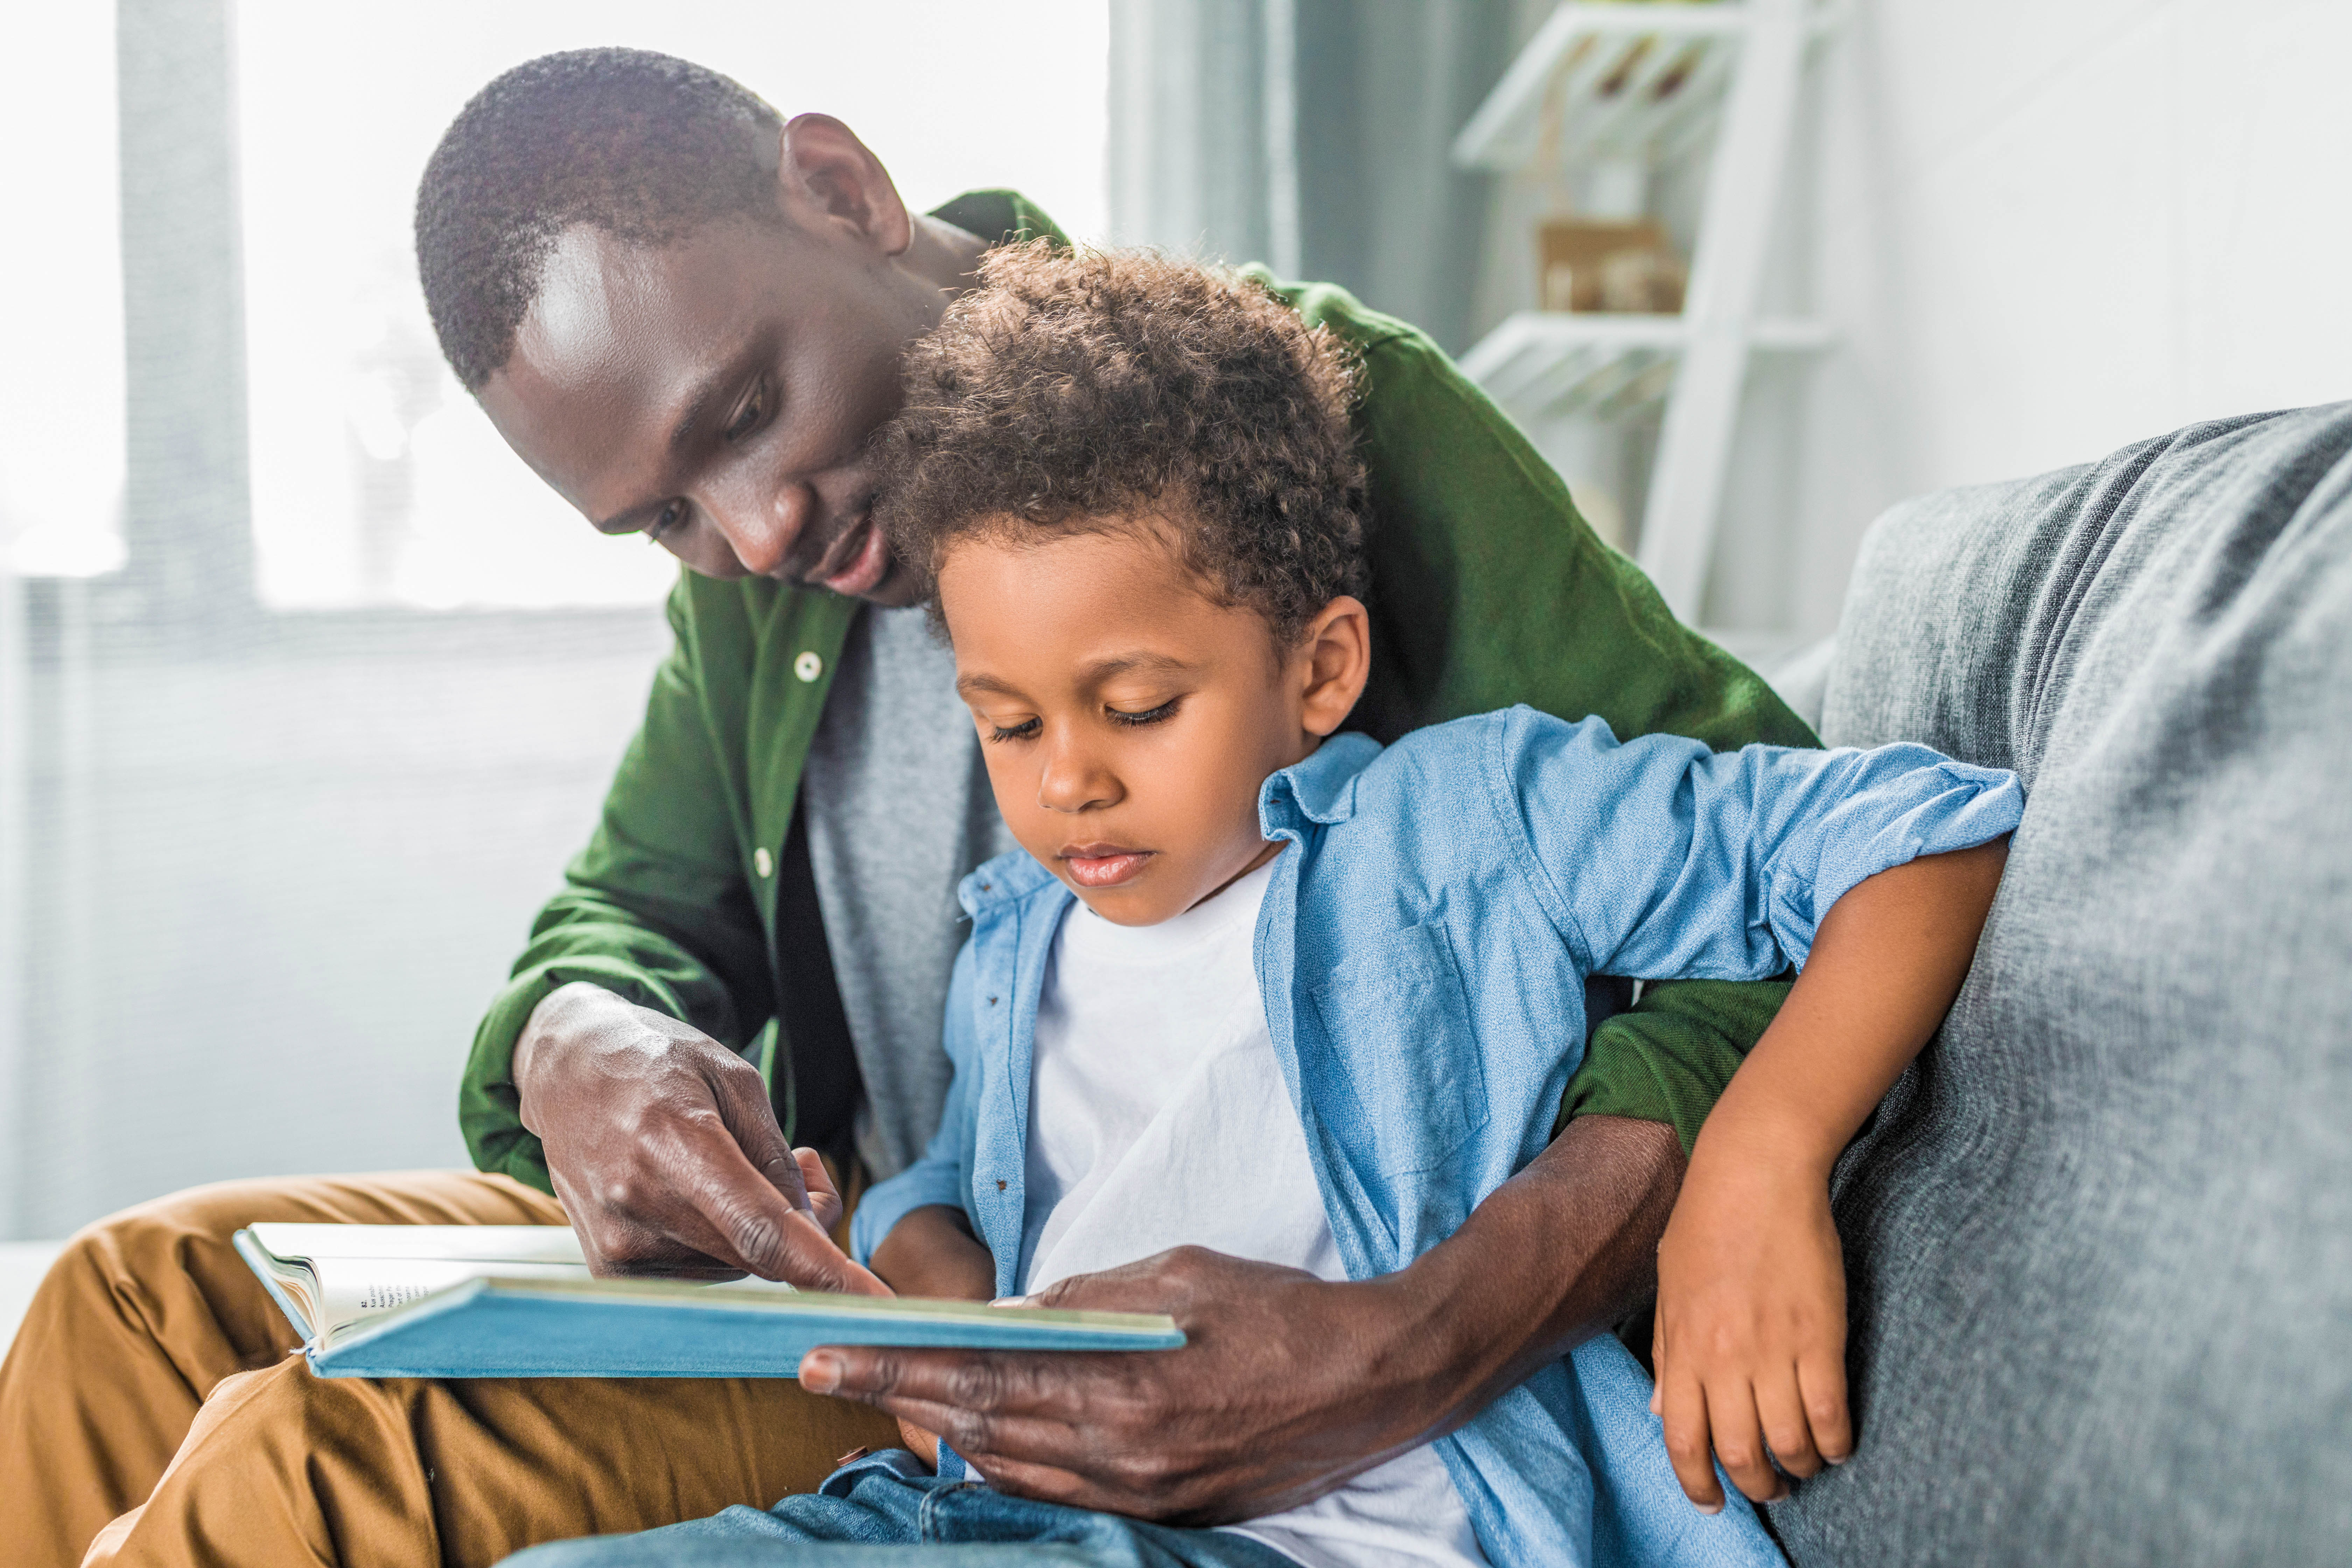 Read a Child a Book You Like Day - This is a day to read a book to a child that you like. Well, this should be every day actually. #ReadAChildABookYouLikeDay